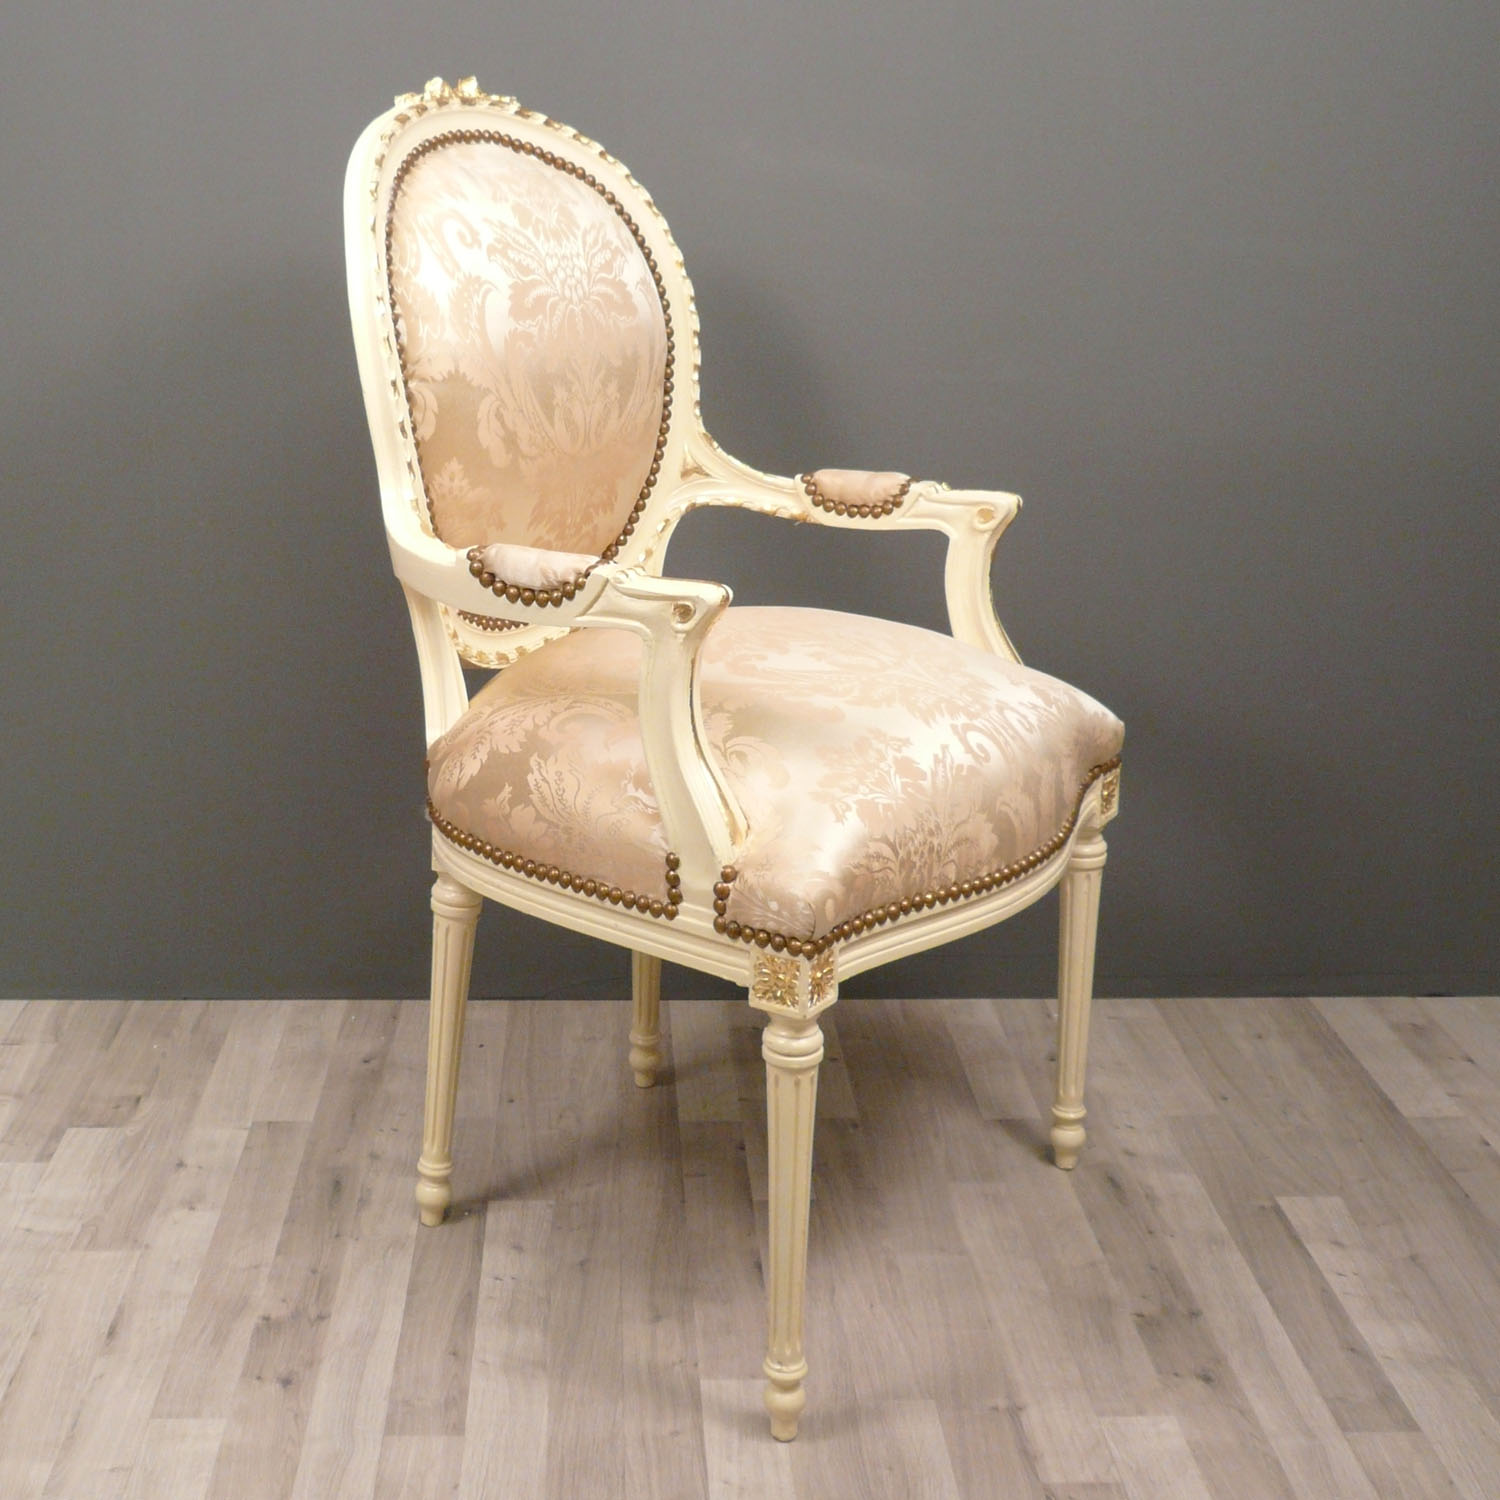 Medallion armchair louis xvi baroque chairs - Chaise louis xvi pas cher ...